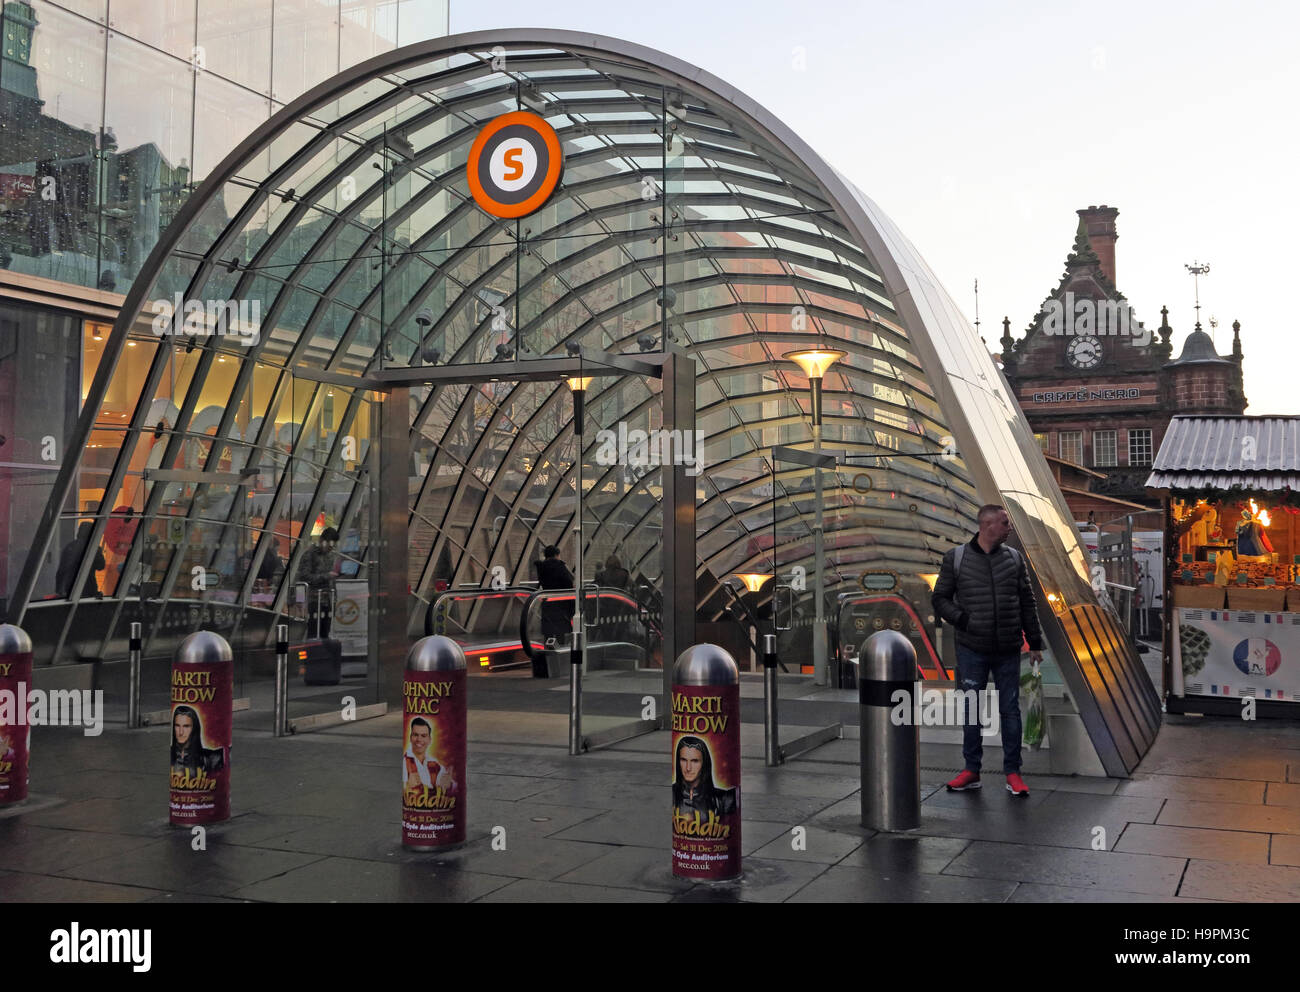 St Enoch subway Underground Station, Glasgow,Scotland - Stock Image